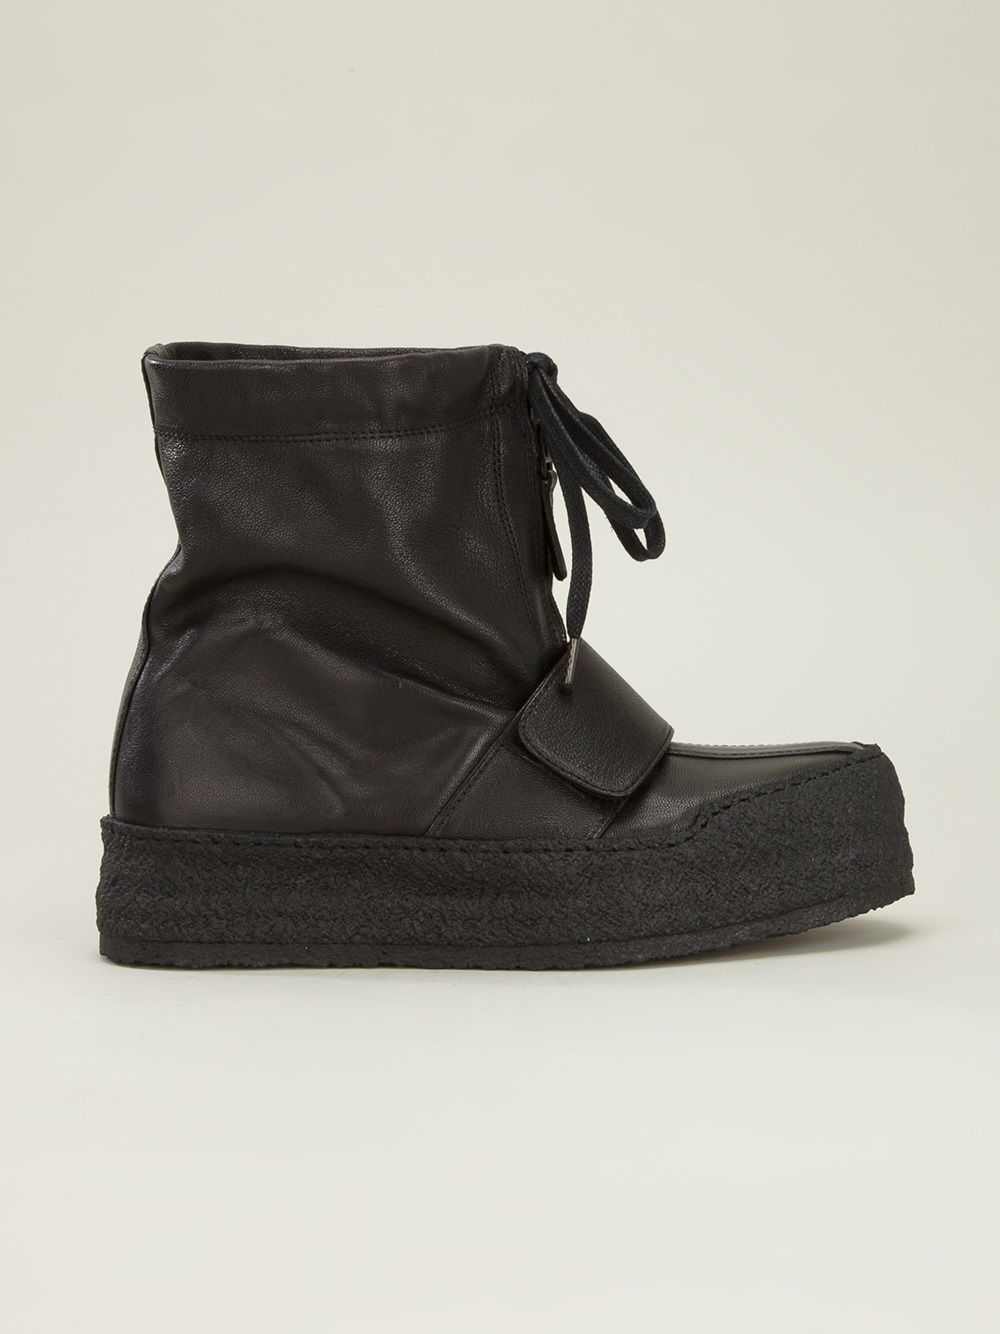 8b7f4c2d Kenzo Slouch Boot - Concept Store Smets - Farfetch.com | Creative ...